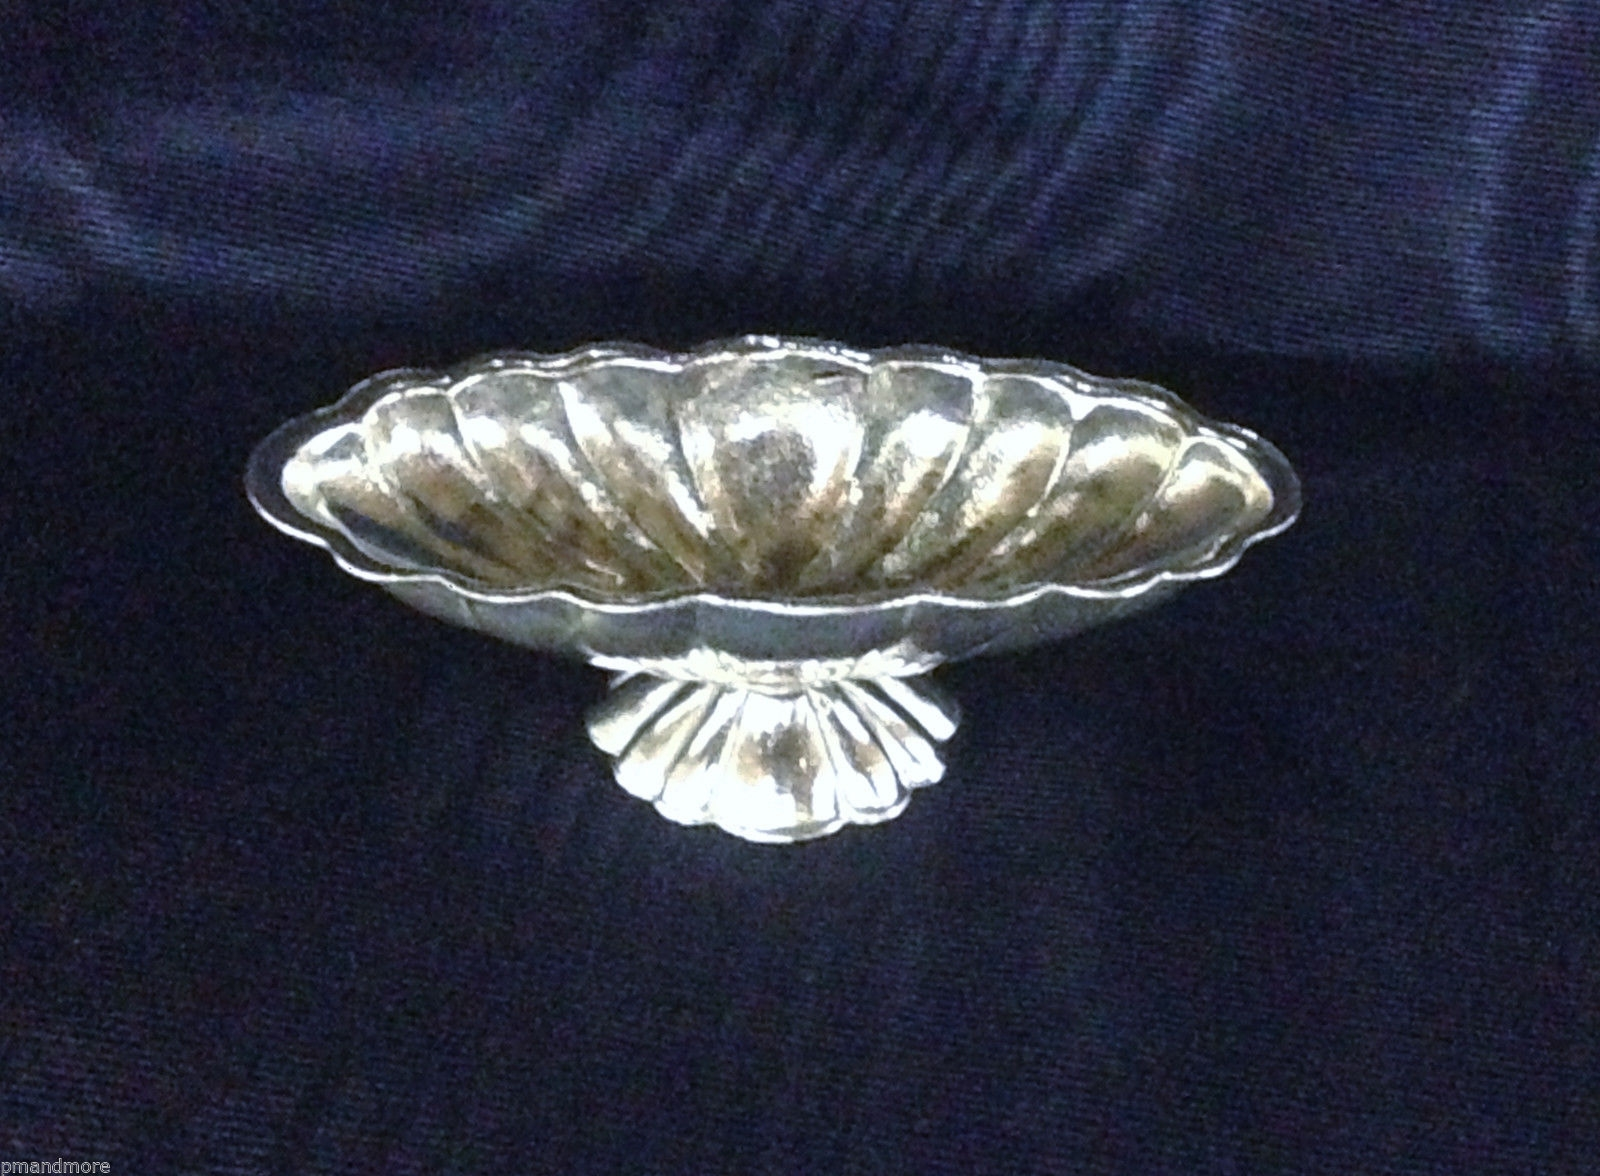 .925 Sterling Silver Decorative Art miniature Oval Vegetable serving bowl